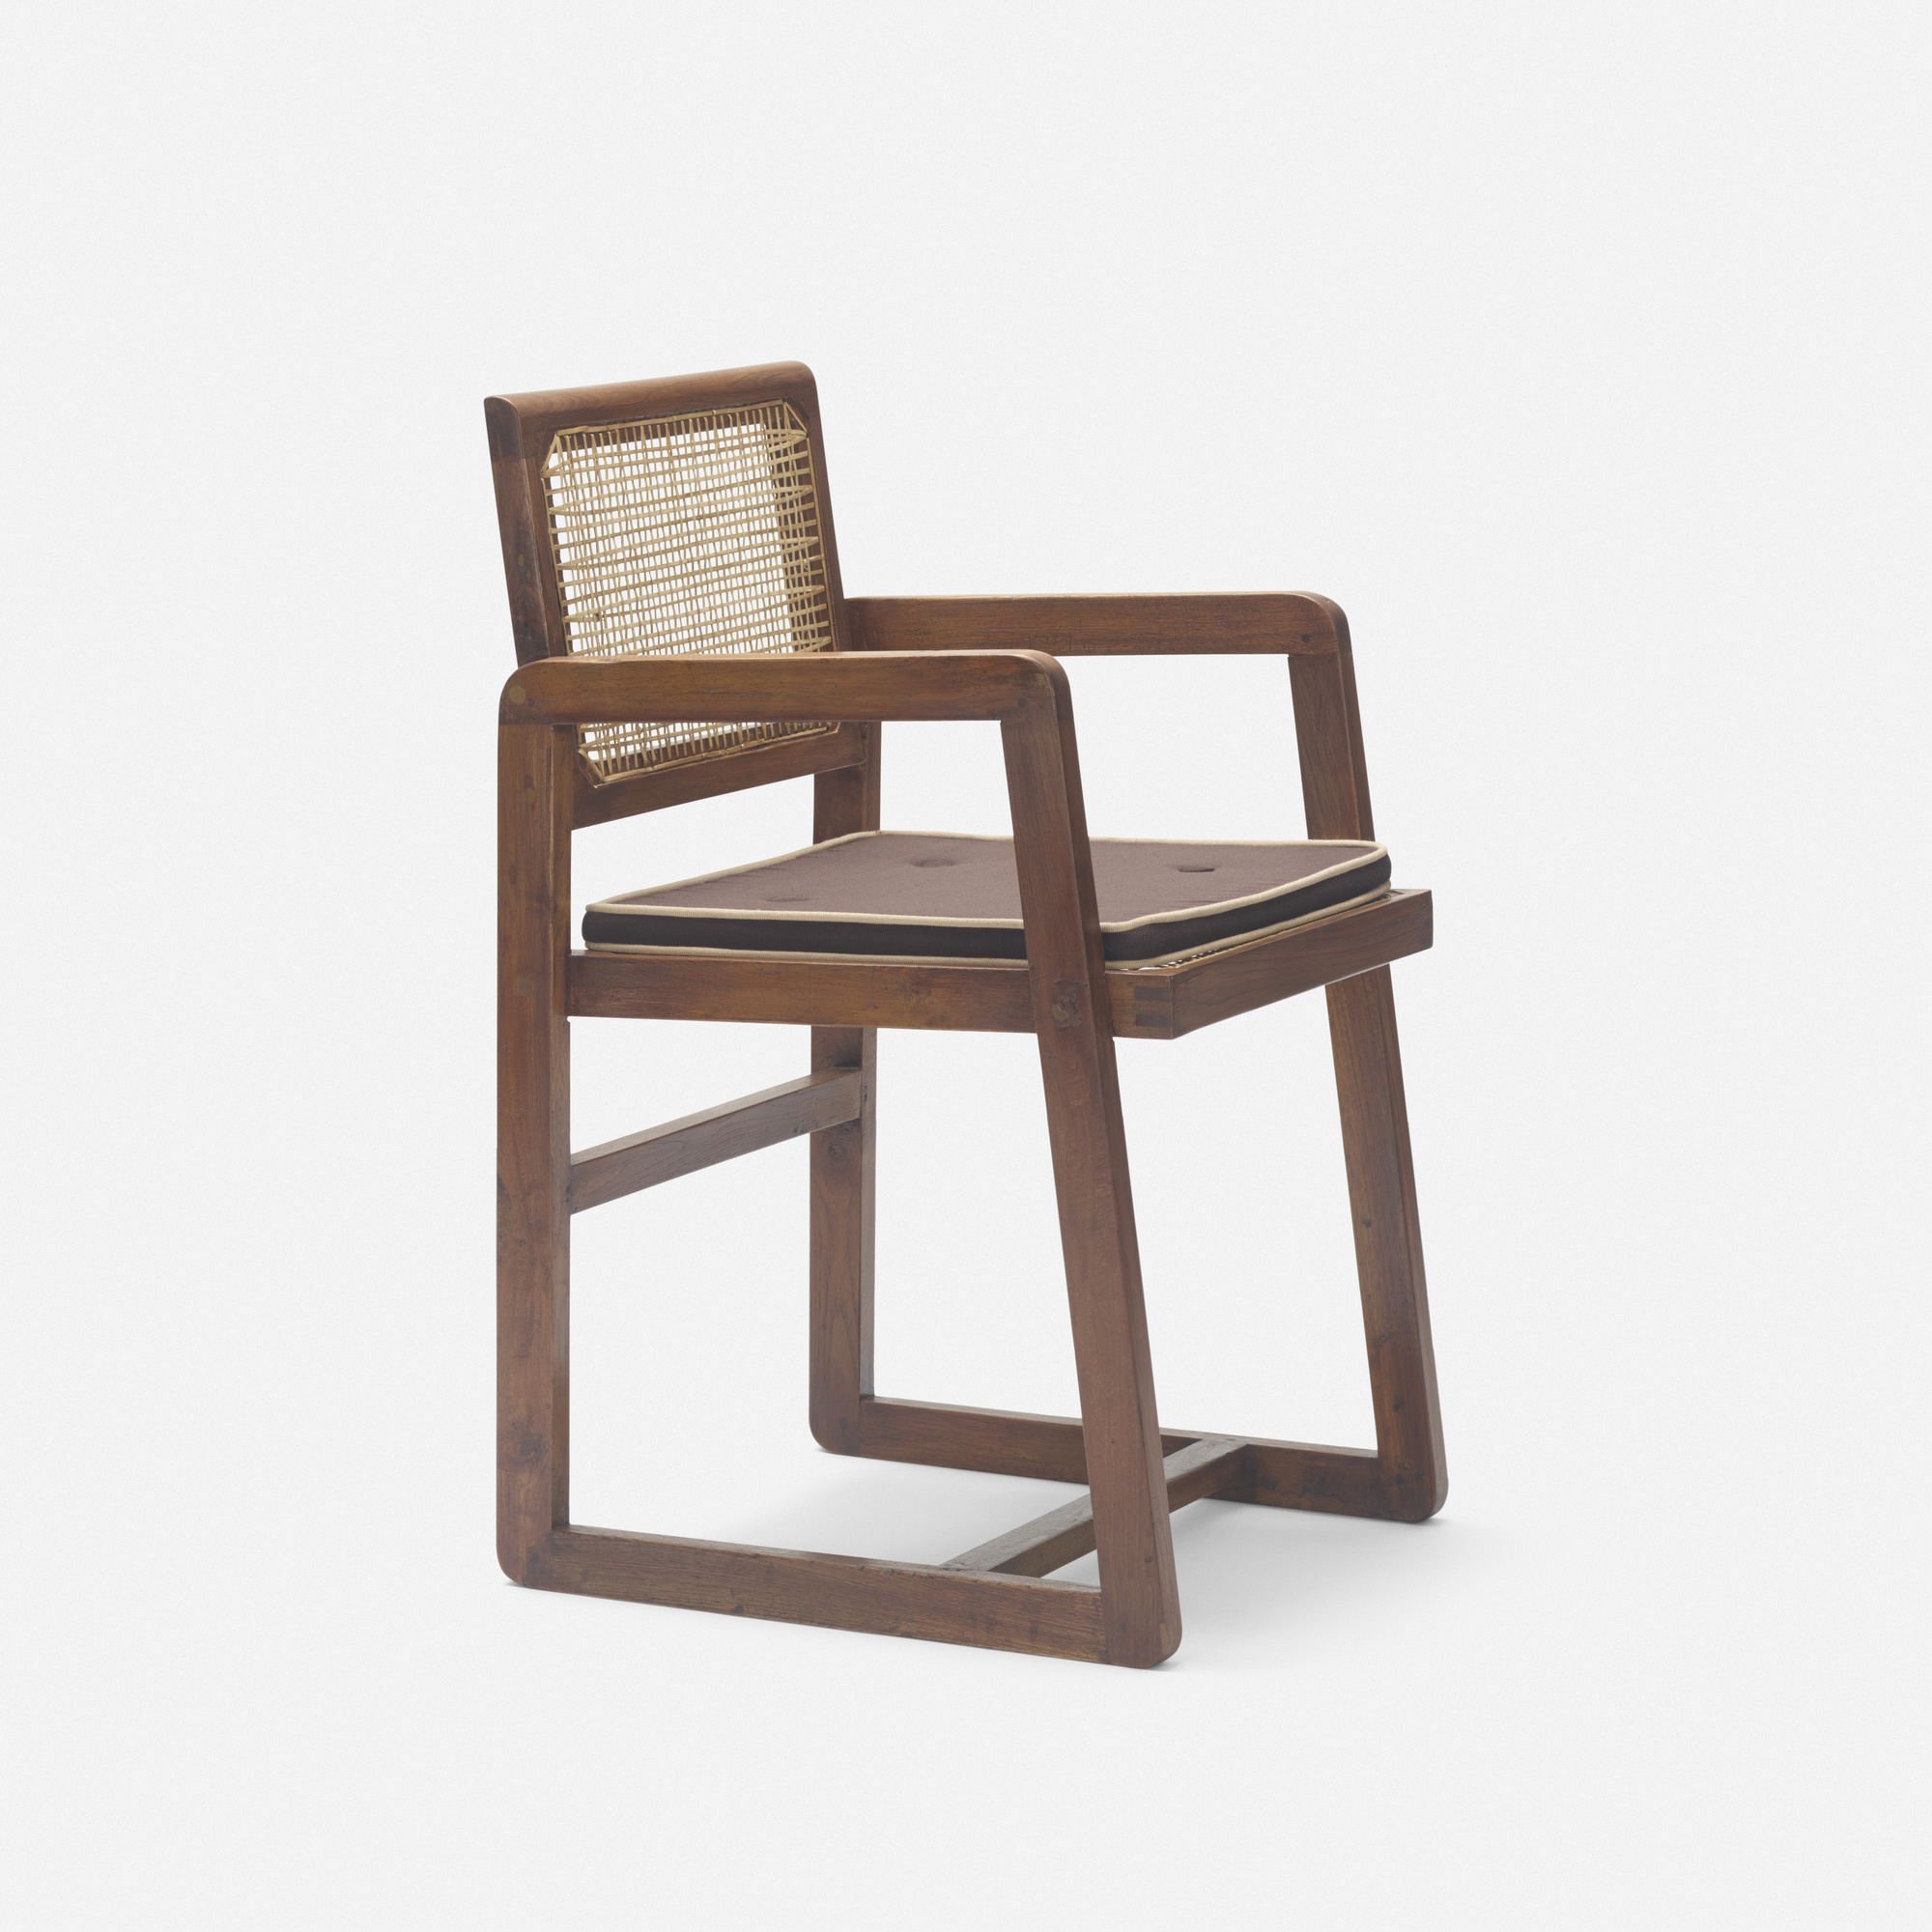 123: Pierre Jeanneret / armchair from Chandigarh (1 of 3)